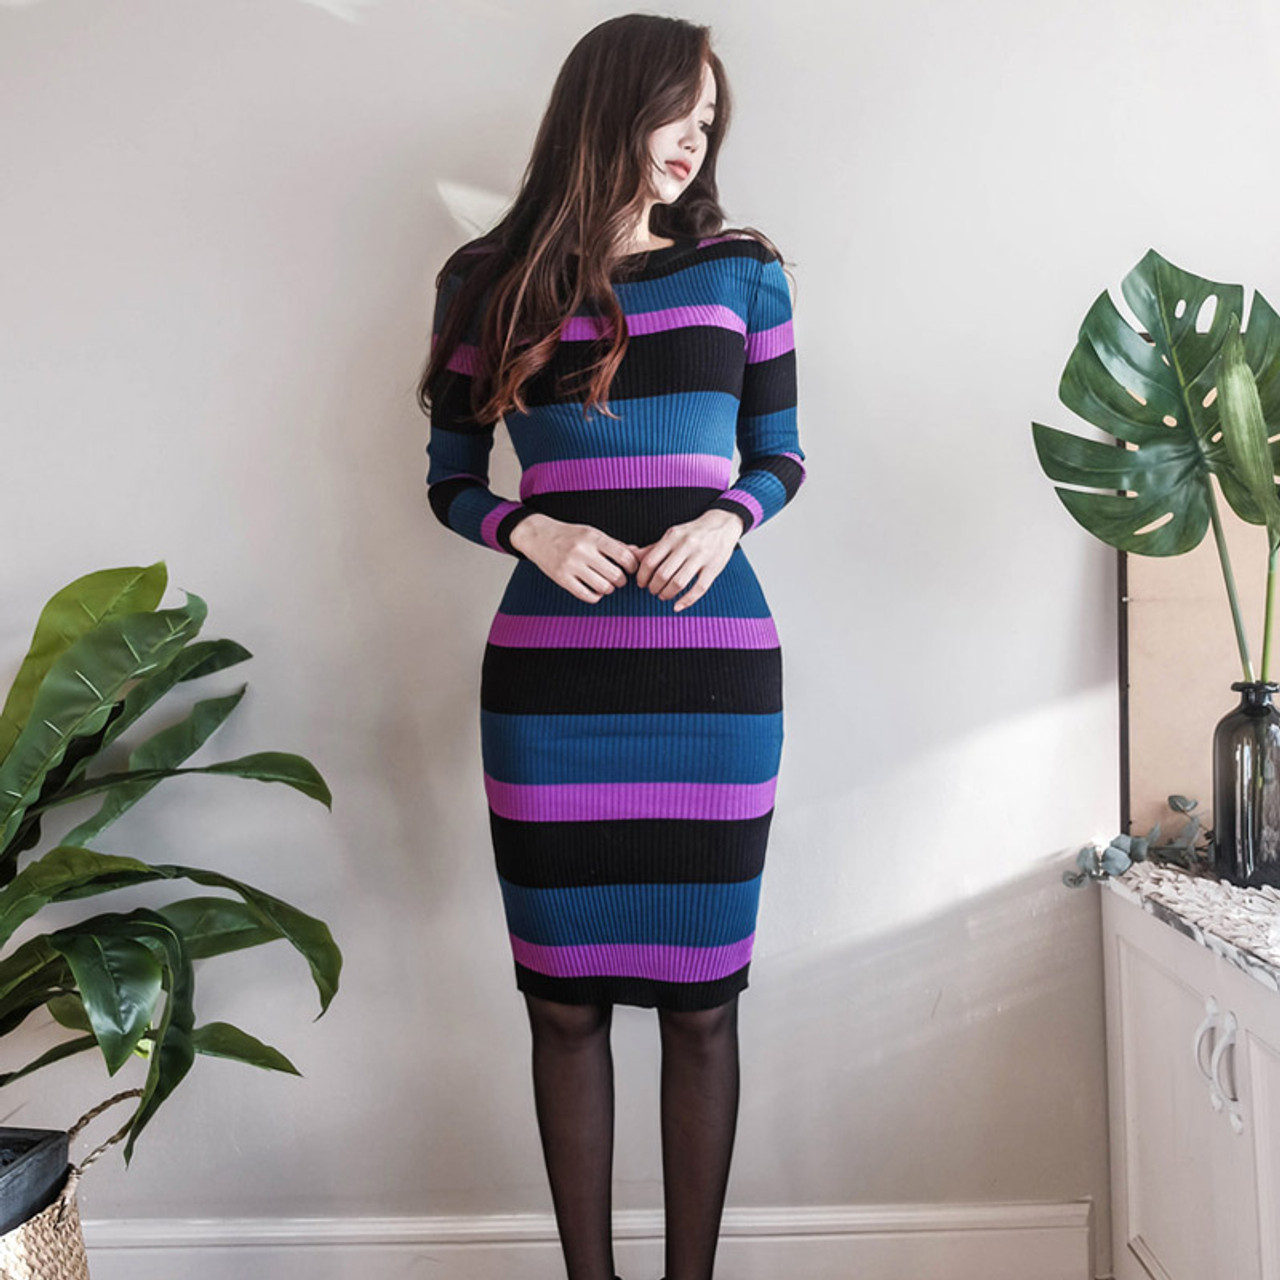 2018 Winter Sheath Striped Sweater Dress Women Stretchy Full Sleeve O Neck Knit Slim Dress Casual Bodycon Party Dresses Knitted Onshopdeals Com